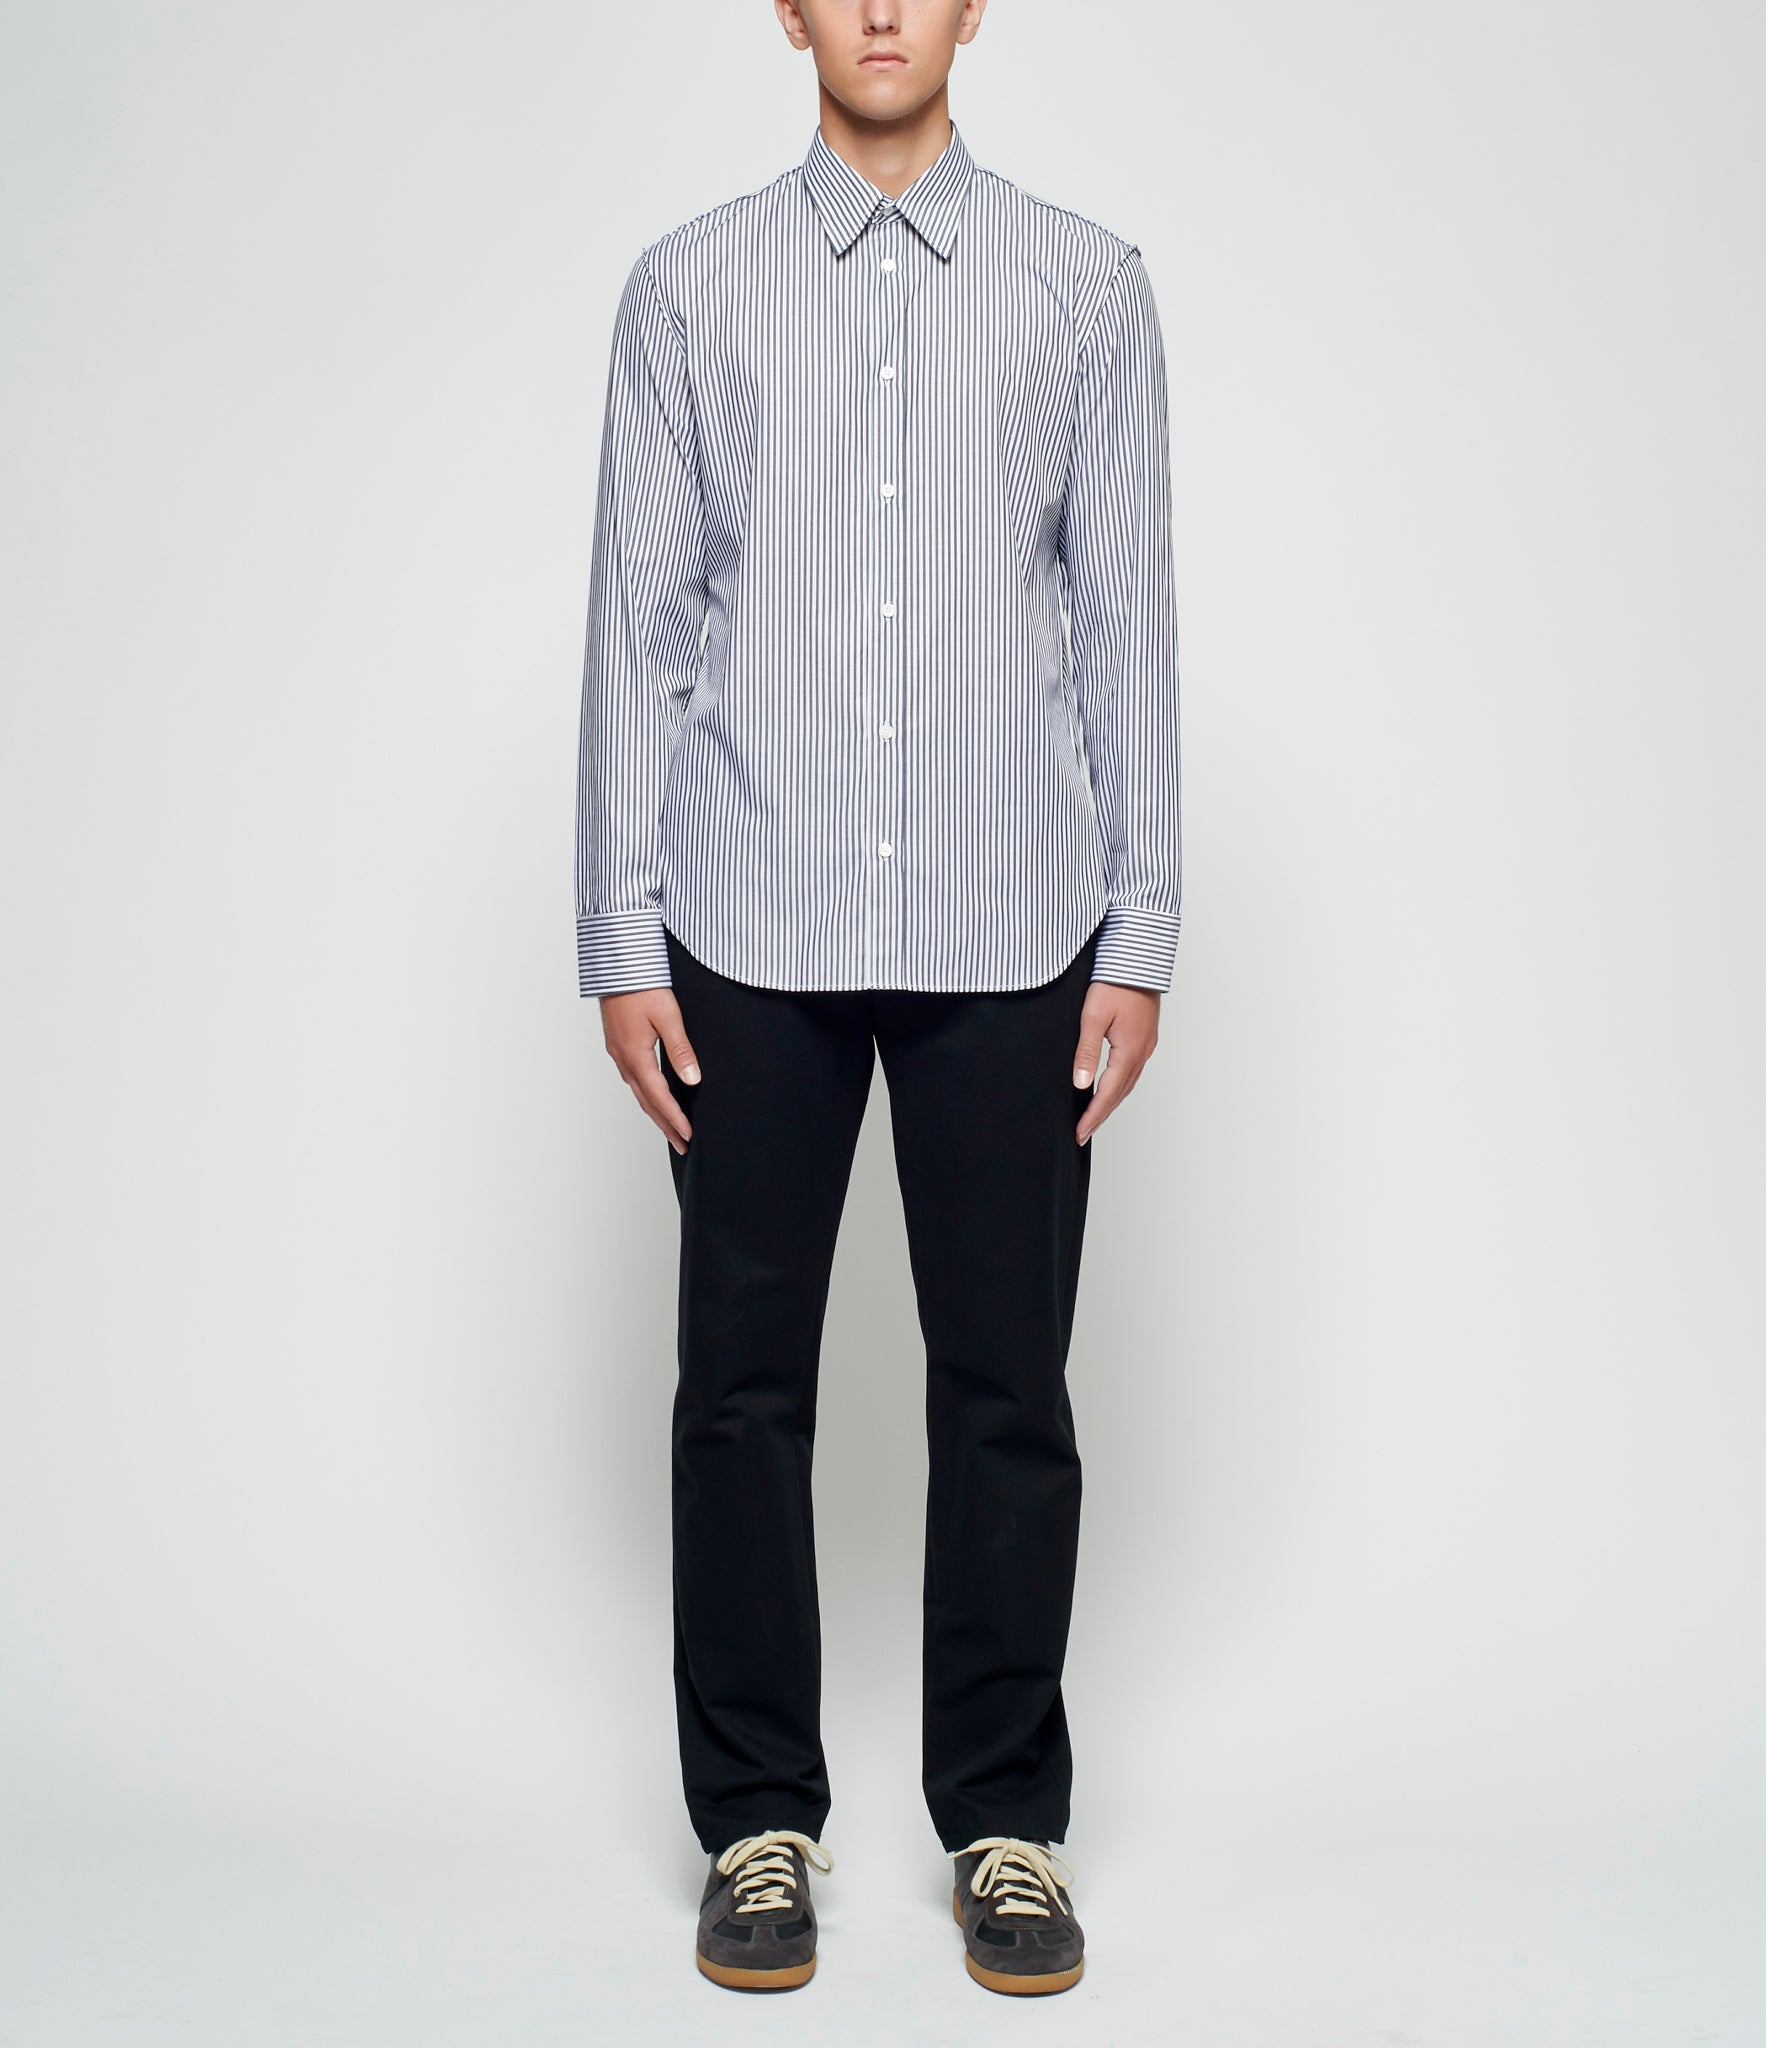 Maison Margiela Raised Seam Classic Striped Shirt